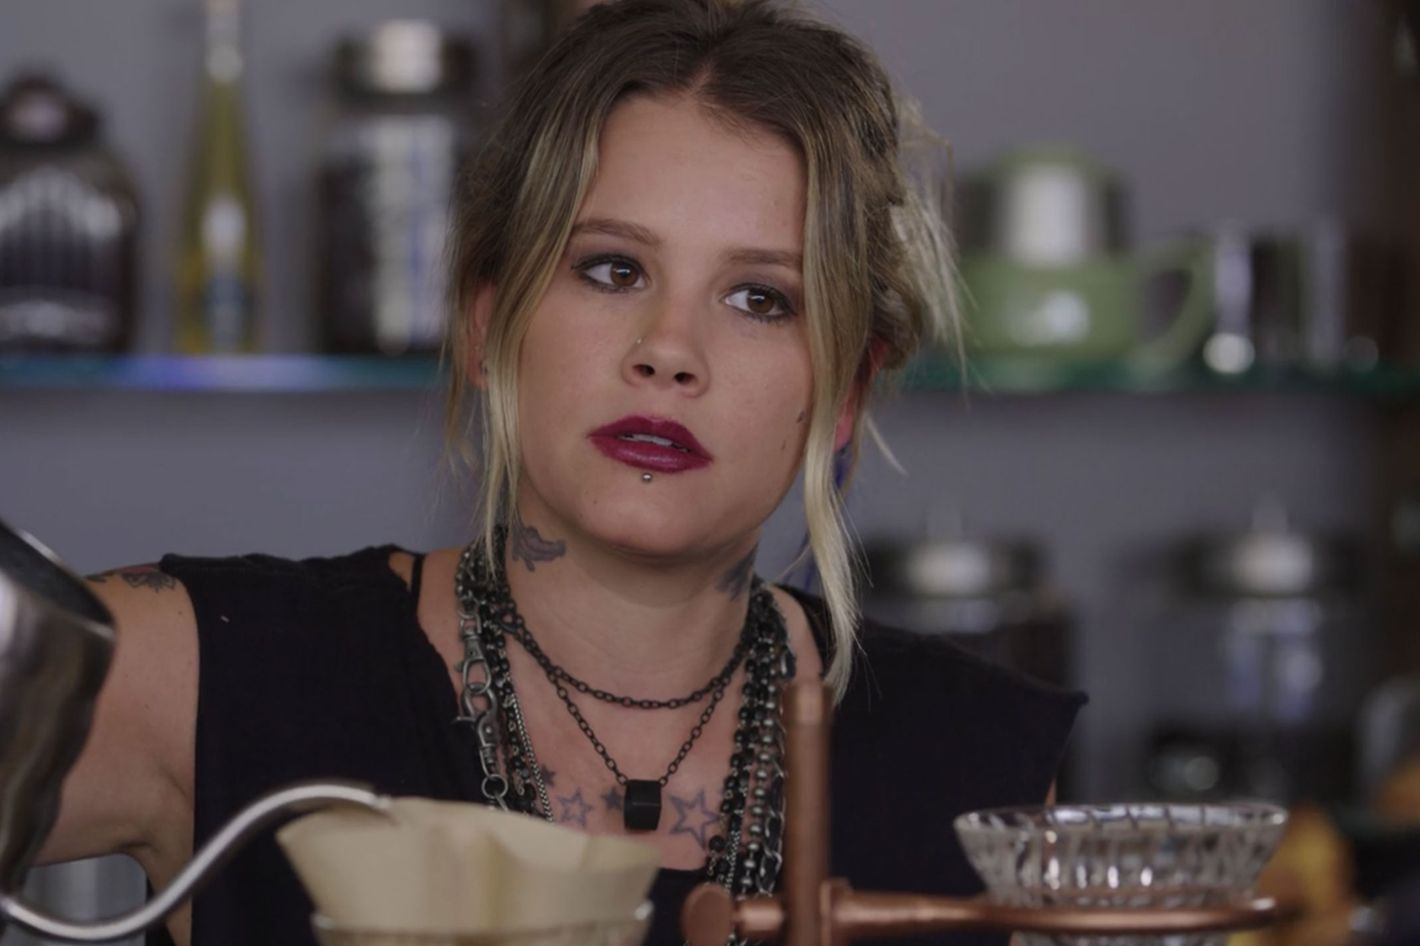 The Teens On 13 Reasons Why Have A Lot Of Tattoos